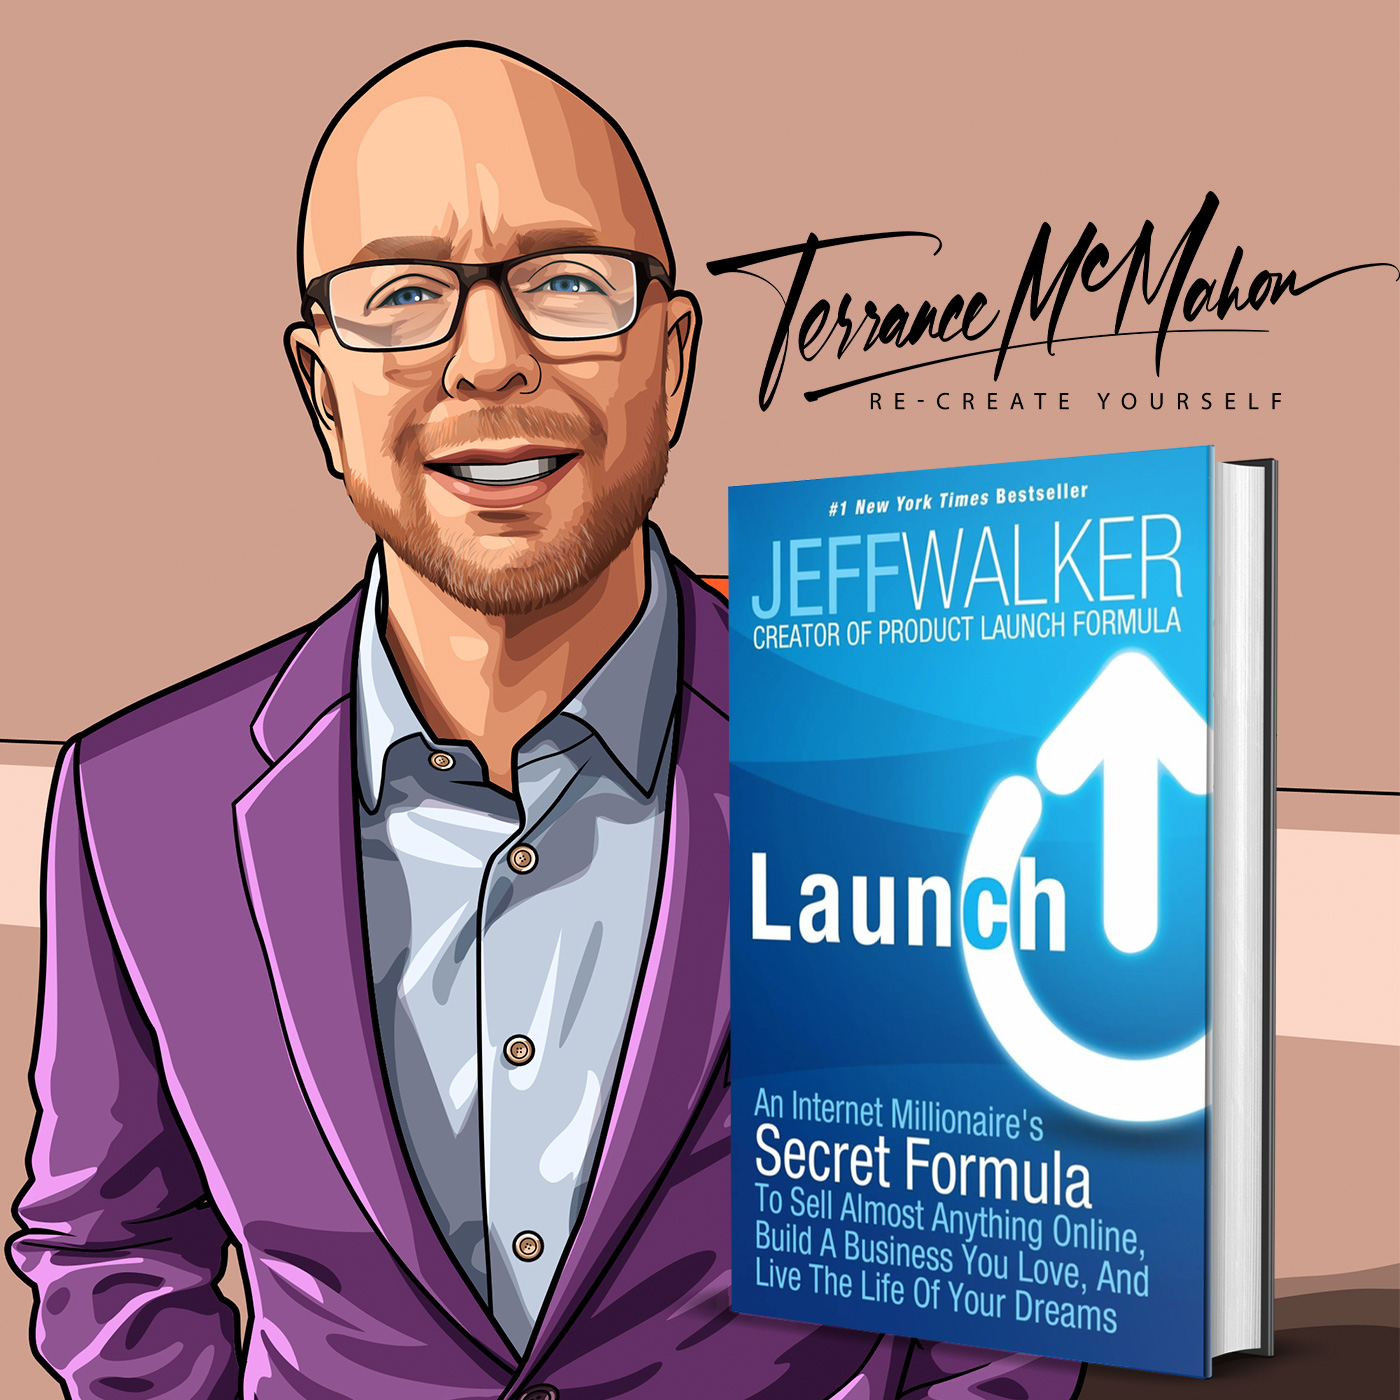 4.12 An Internet Millionaire's Secret Formula To Sell Almost Anything Online - Jeff Walker